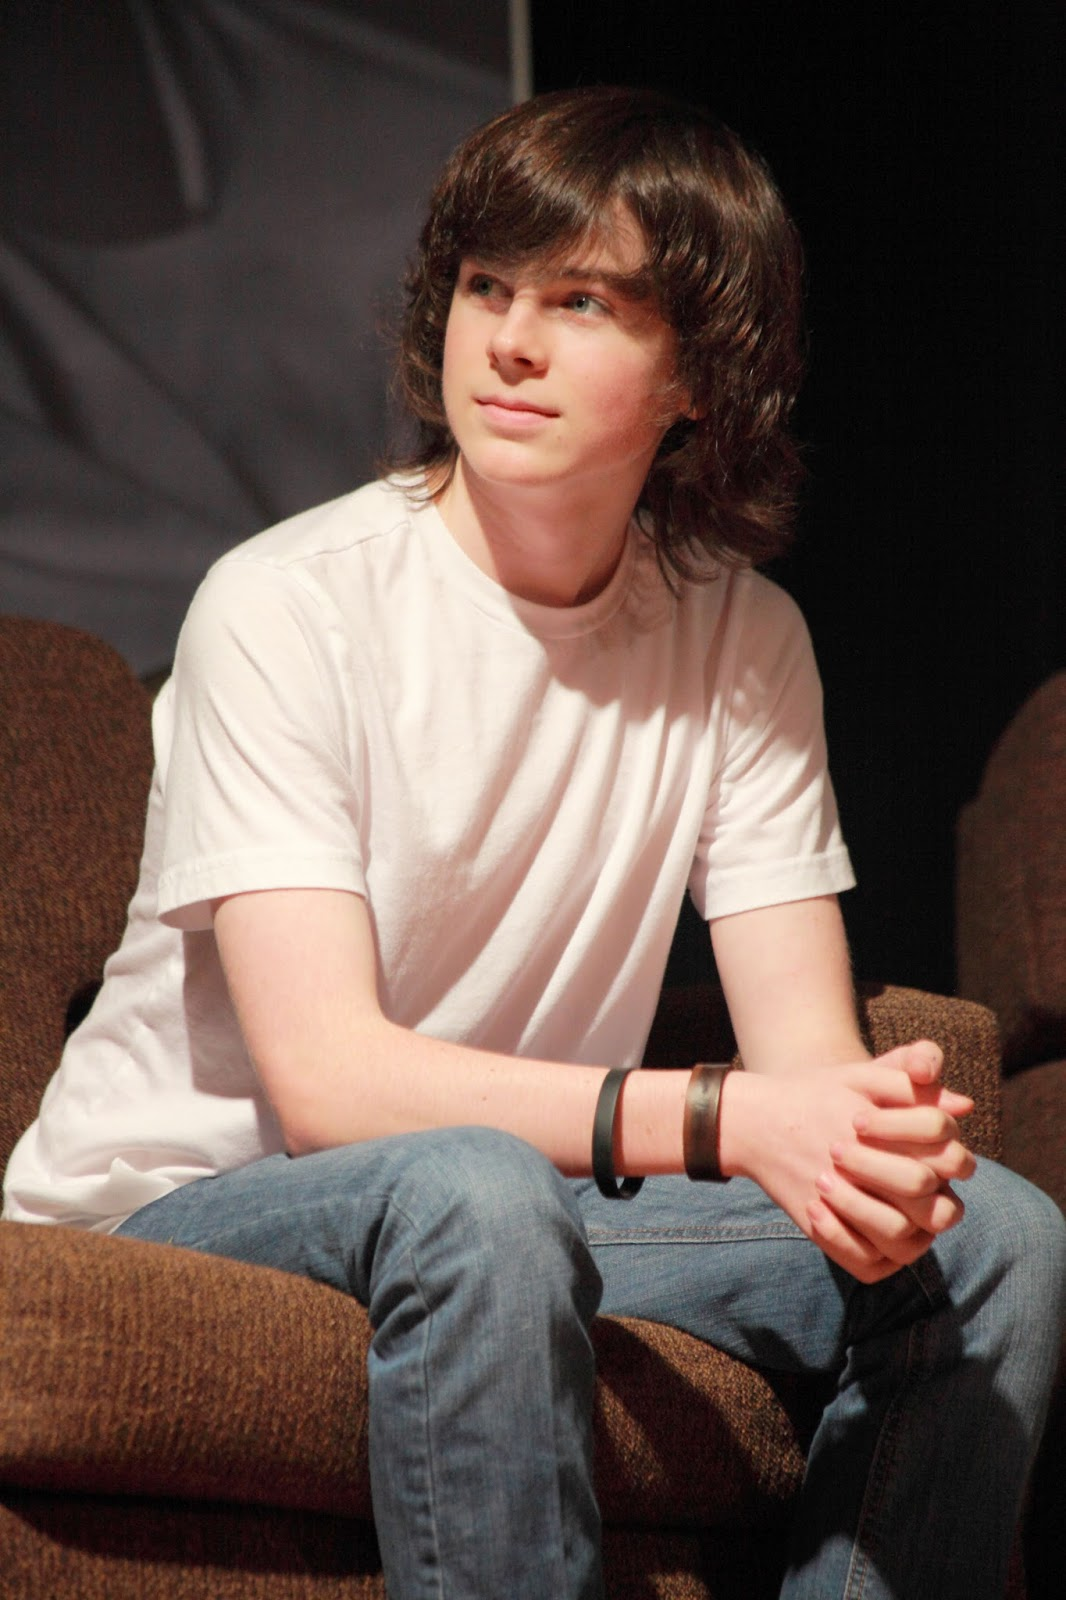 Chandler Riggs younger photo two at blogspot.com